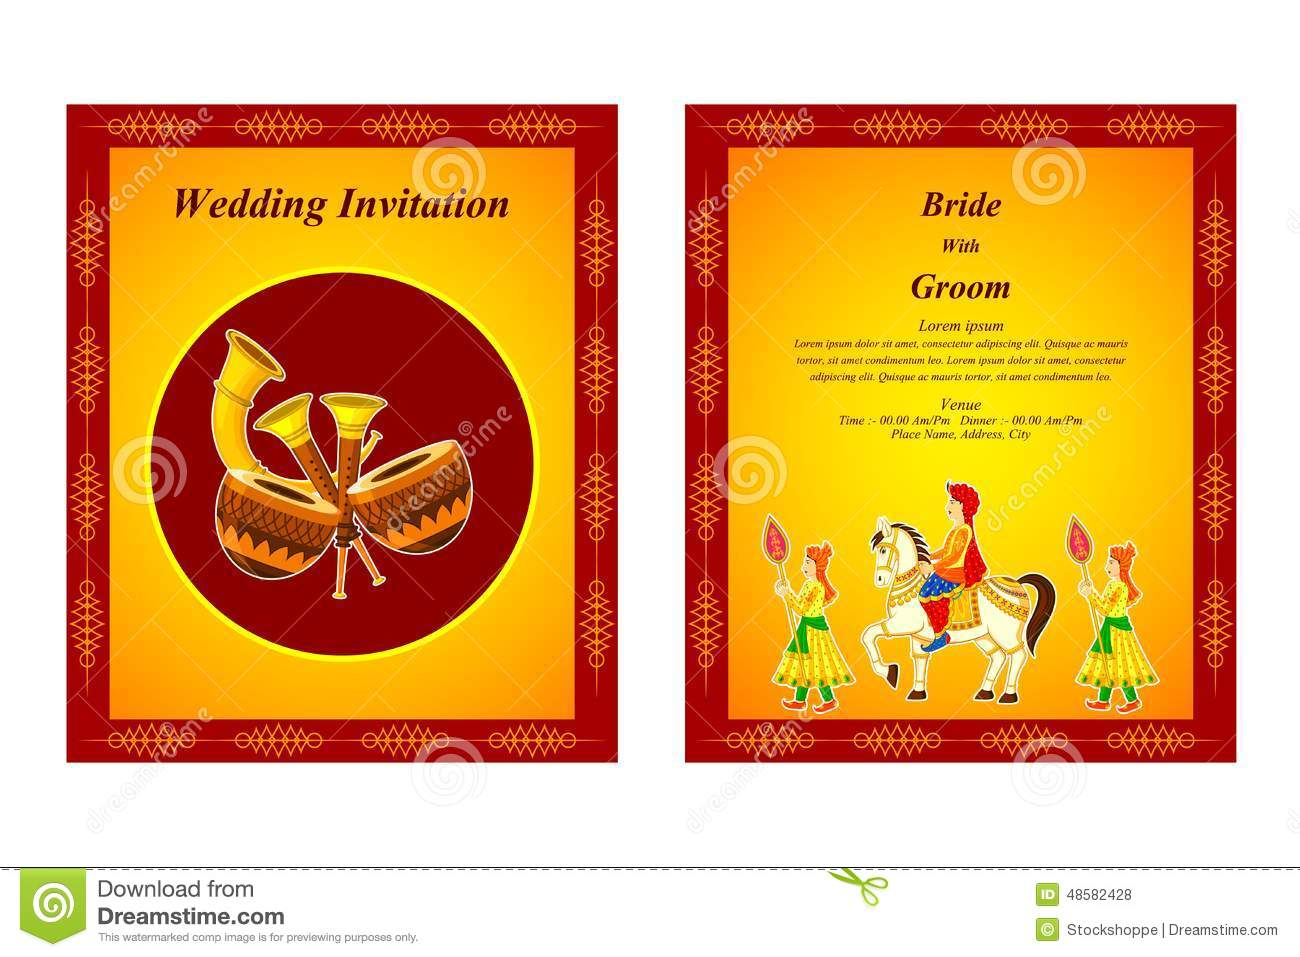 Wedding invitation vector illustration vector free download - Royalty Free Vector Download Indian Wedding Invitation Card